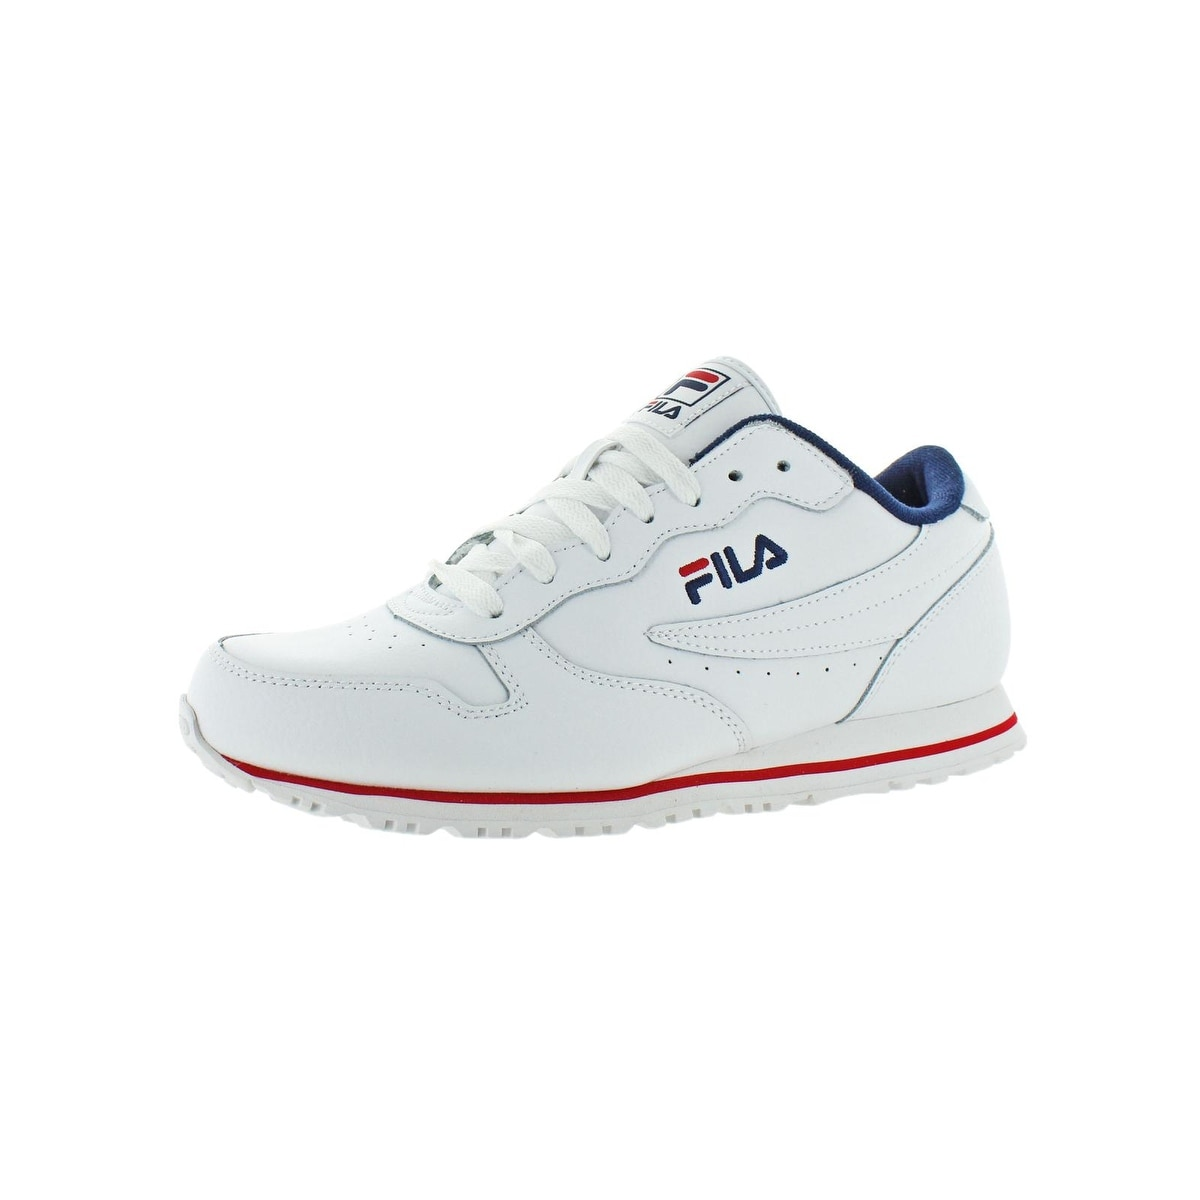 Fila Mens joggers sale Up to 65% off | Love the Sales